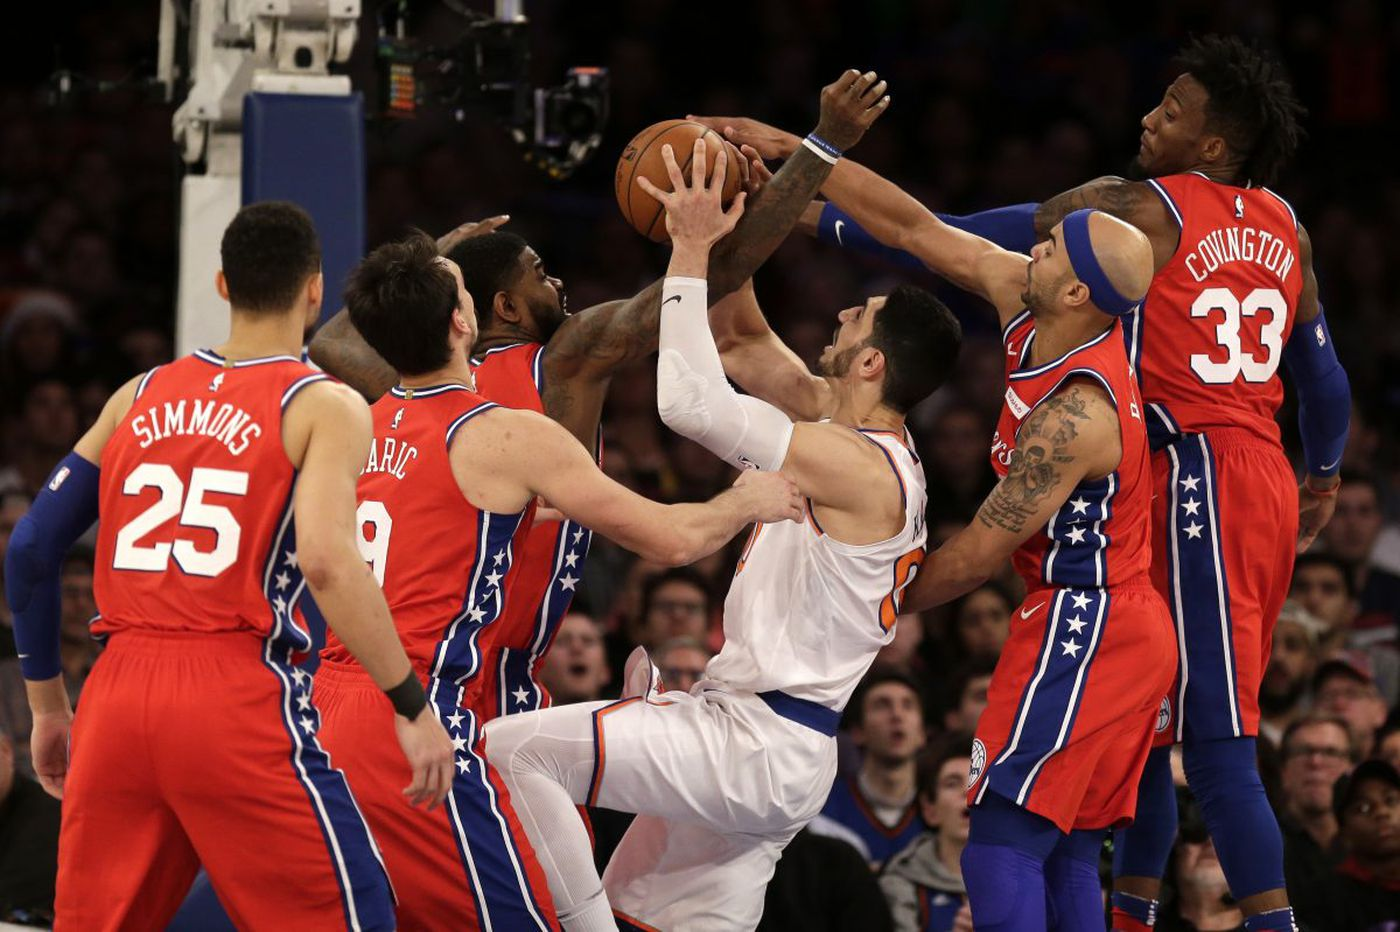 Sixers fans invade Madison Square Garden